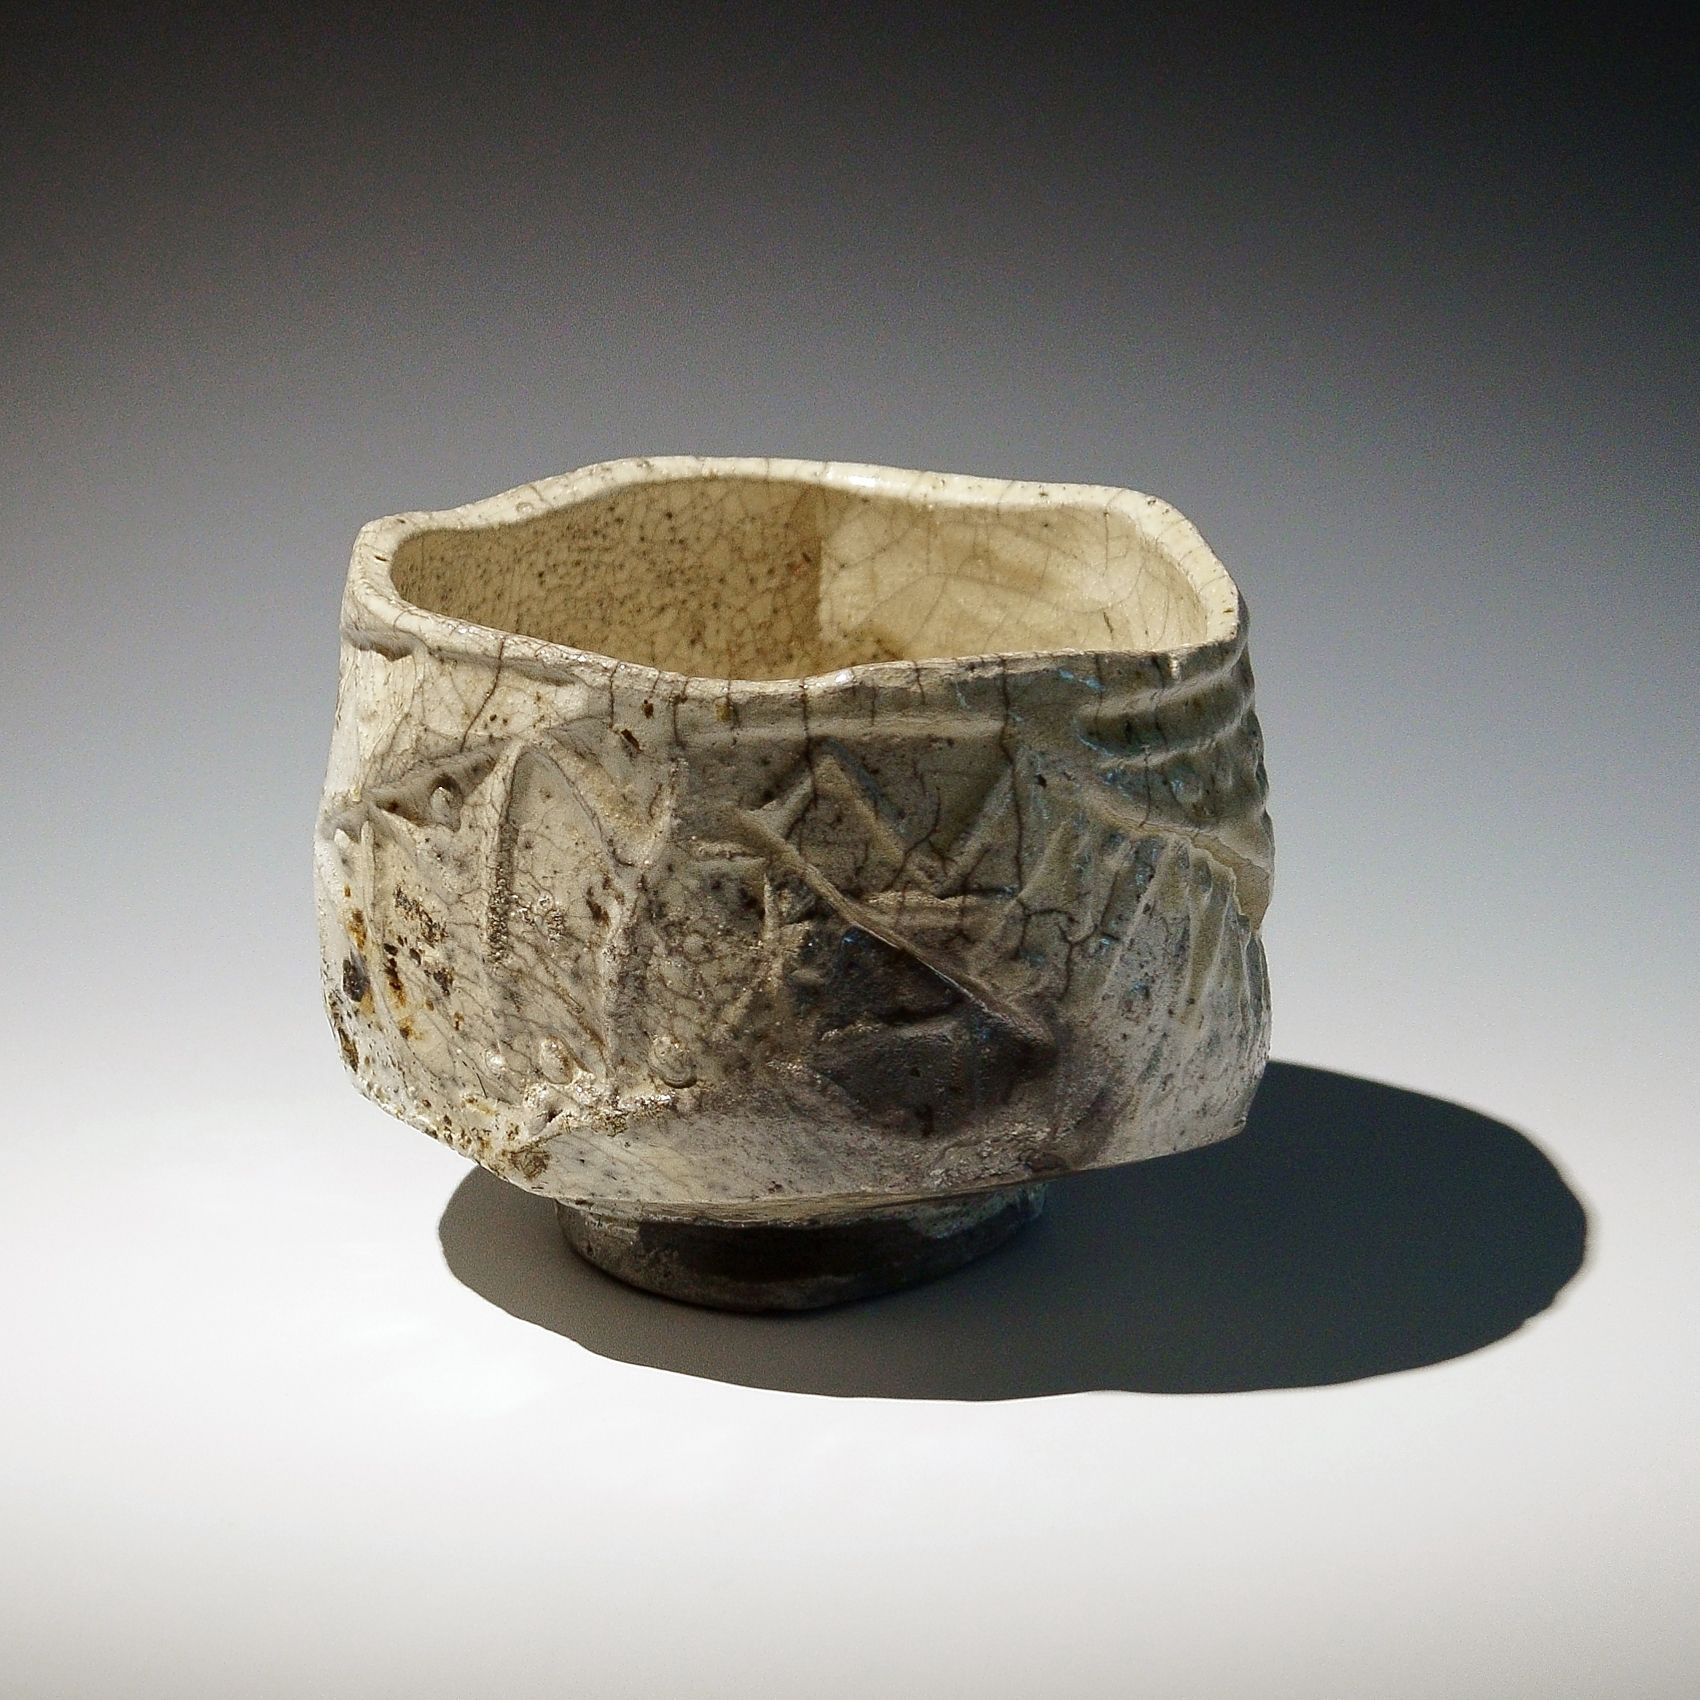 Tanimoto Kei (b. 1948), Large Iga white-glazed raku-style straight-sided teabowl with irregular mouth and carved patterning2017